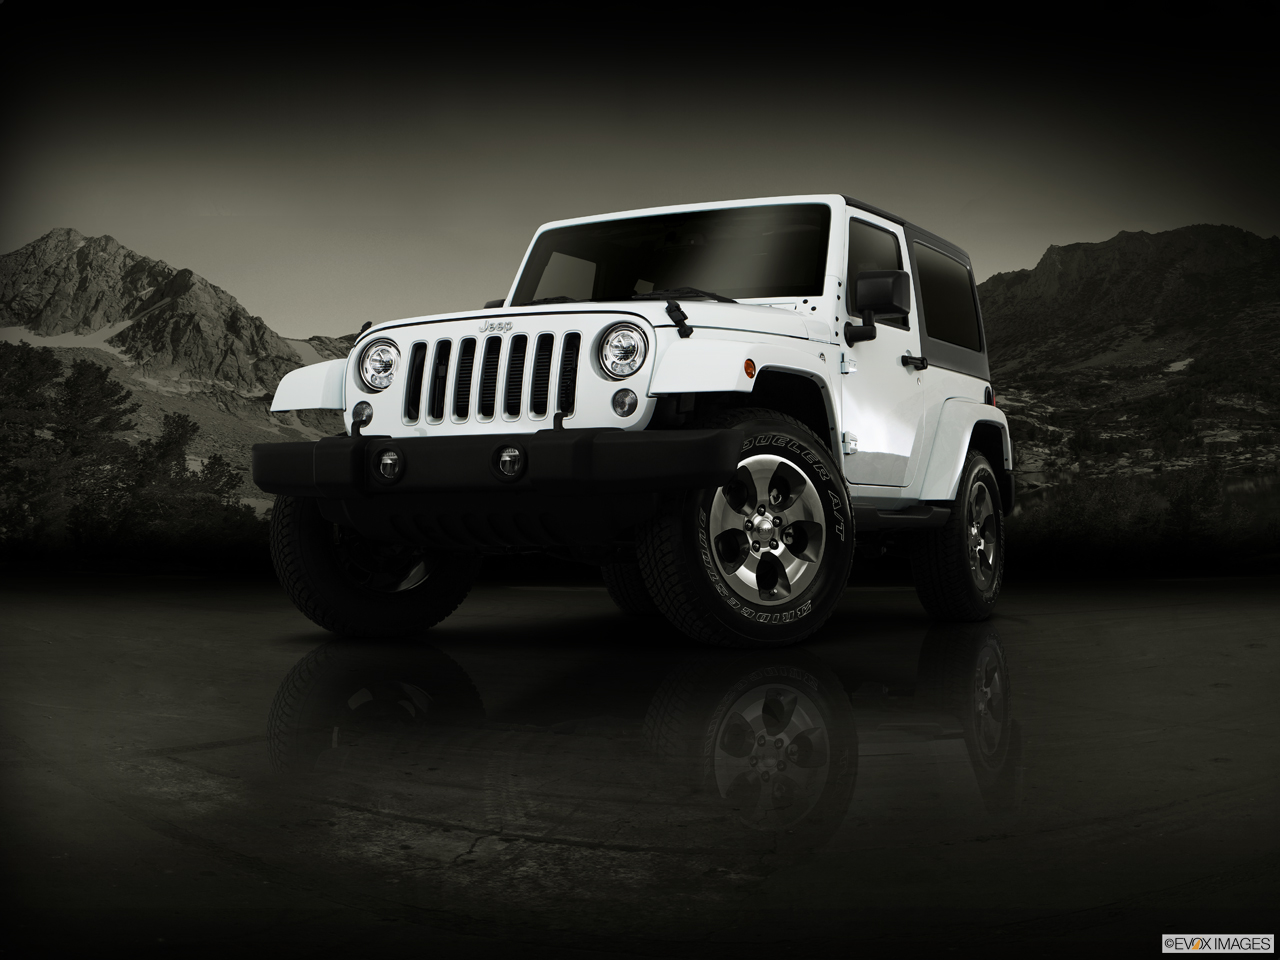 Exterior View Of 2017 Jeep Wrangler in Turnersville